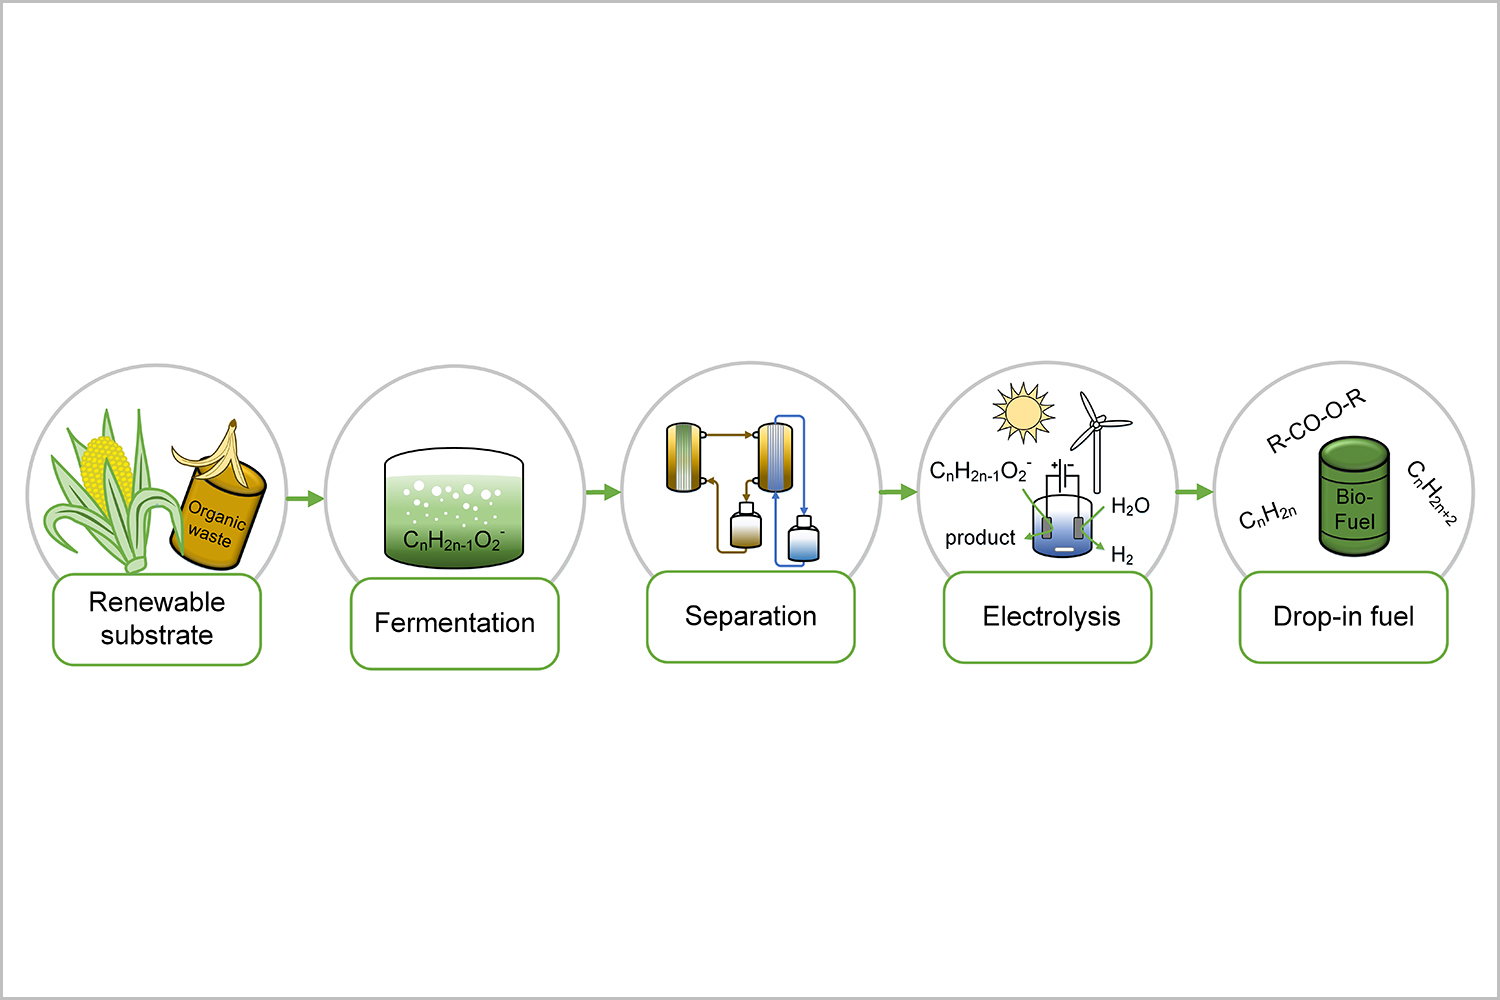 Production Of Drop In Fuel From Biomass By Microbial And How Electricity Generation Works Process Line The Proposed Combined Electrochemical Conversion To Yield Credit Ufz Carolin Urban Und Falk Harnisch